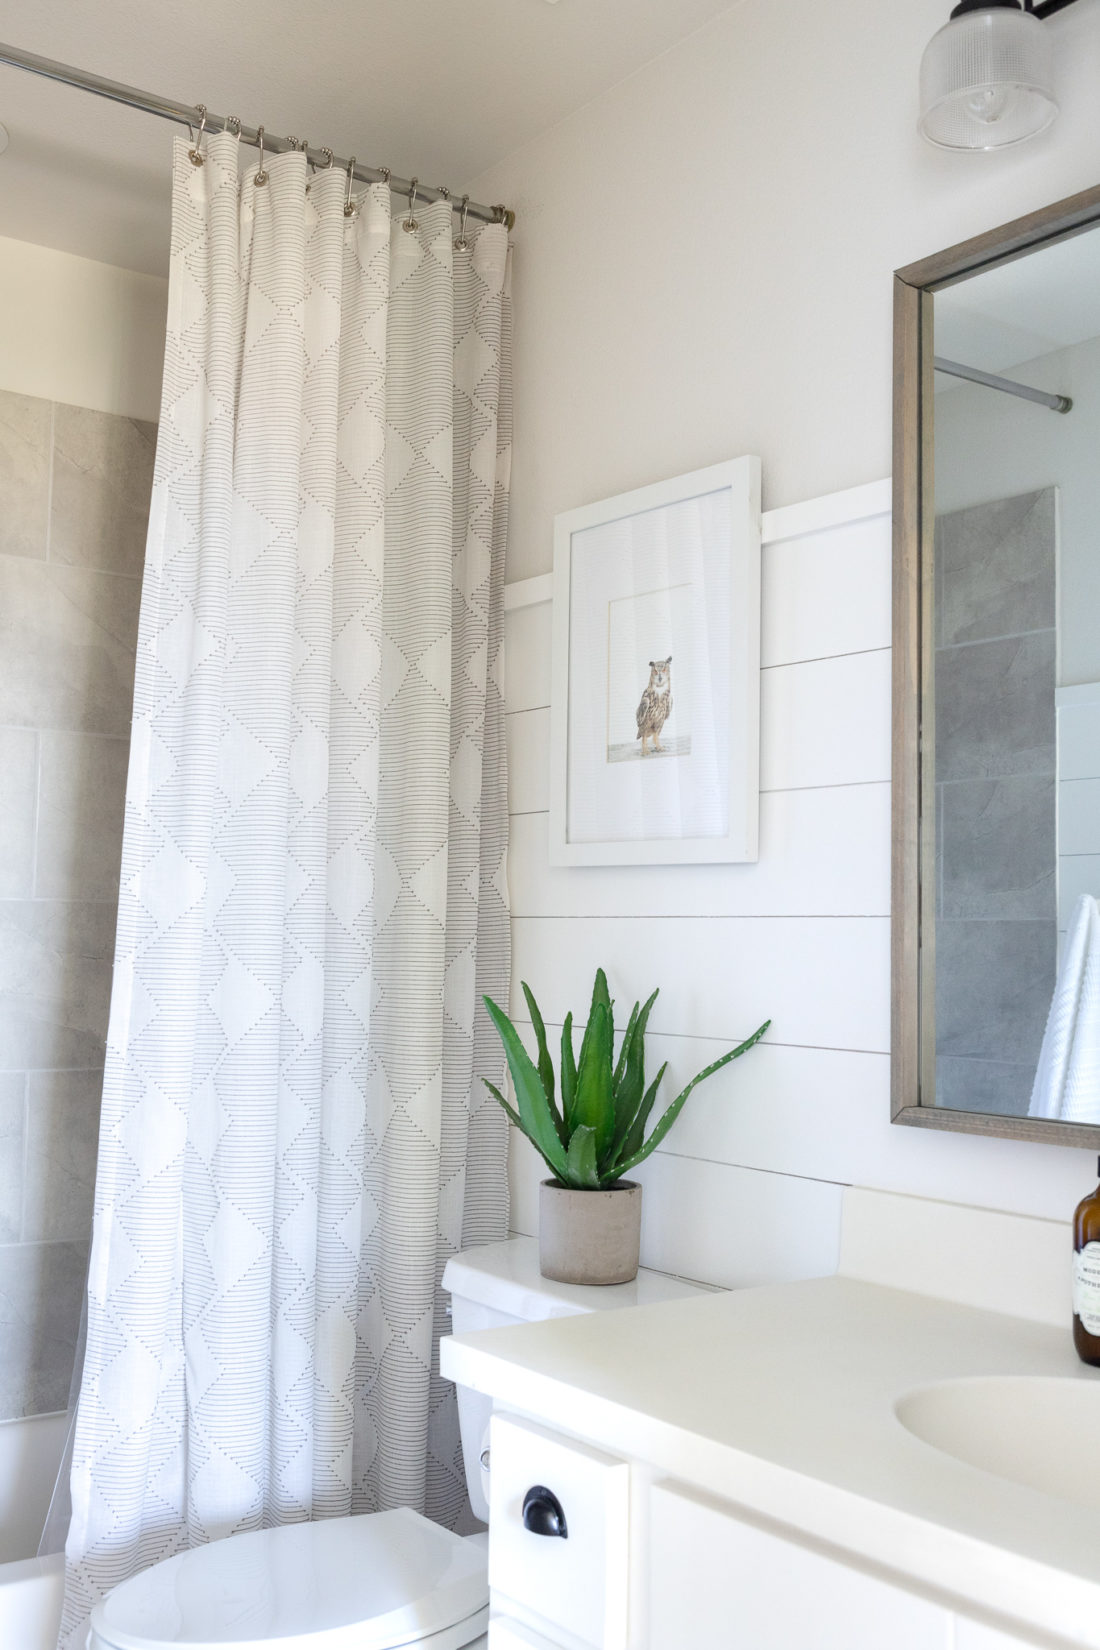 How To Make Shower Curtain How To Make A Shower Curtain From Window Drapes Crazy Wonderful